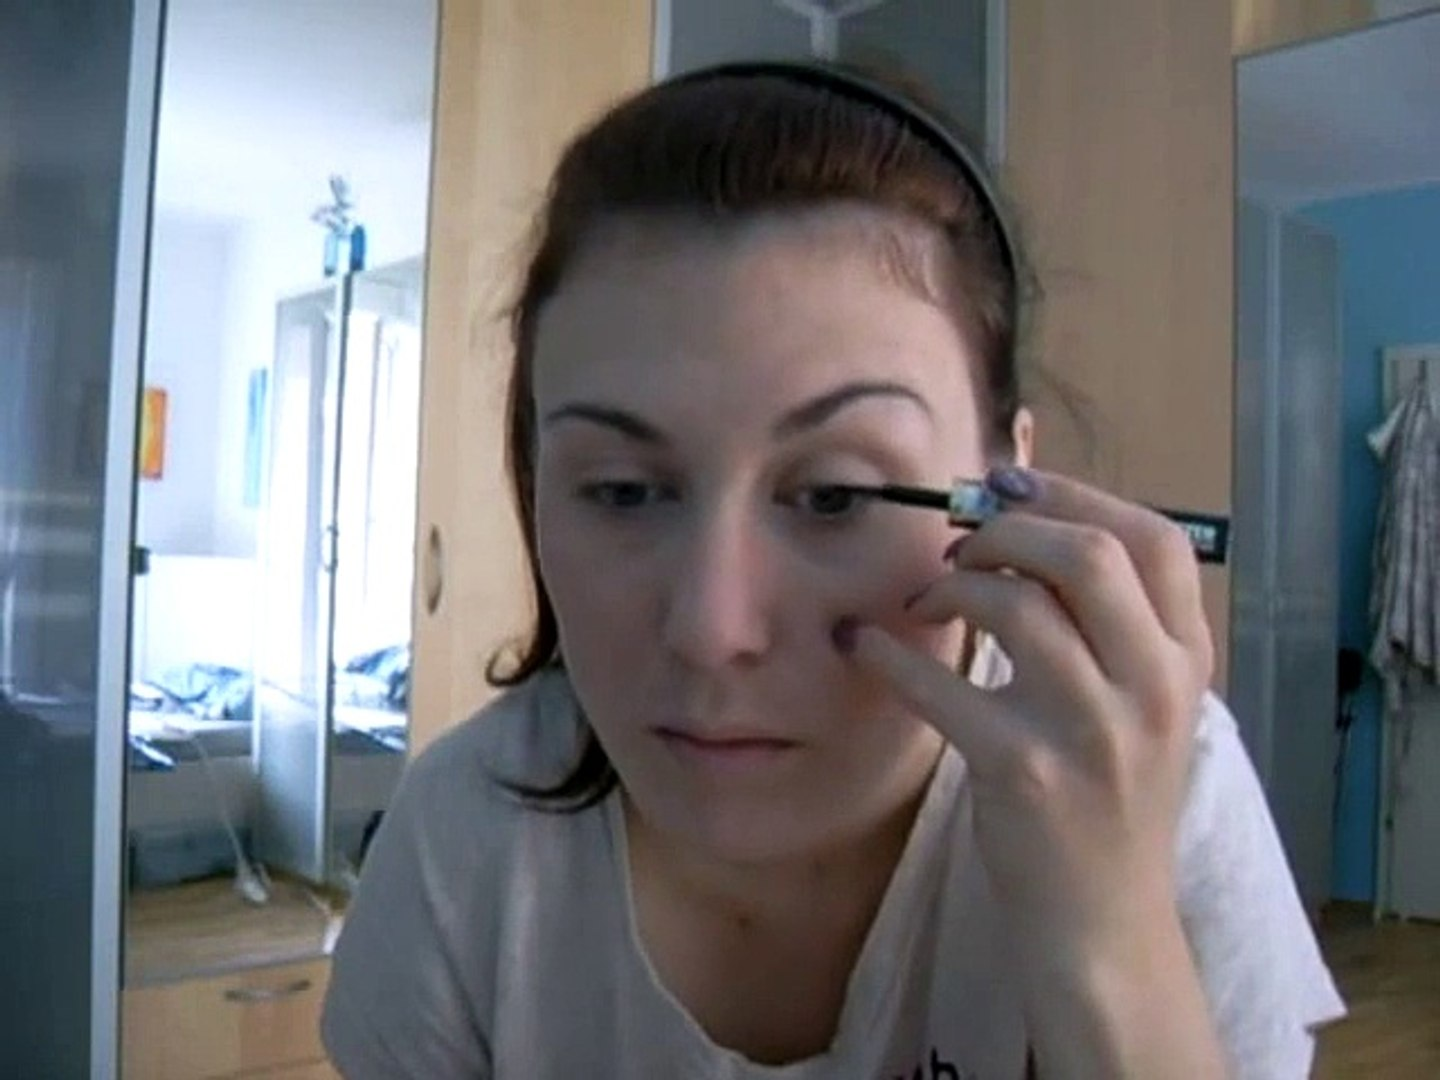 Daily Make Up Routine Gettin' Ready In Less Than 4 part3